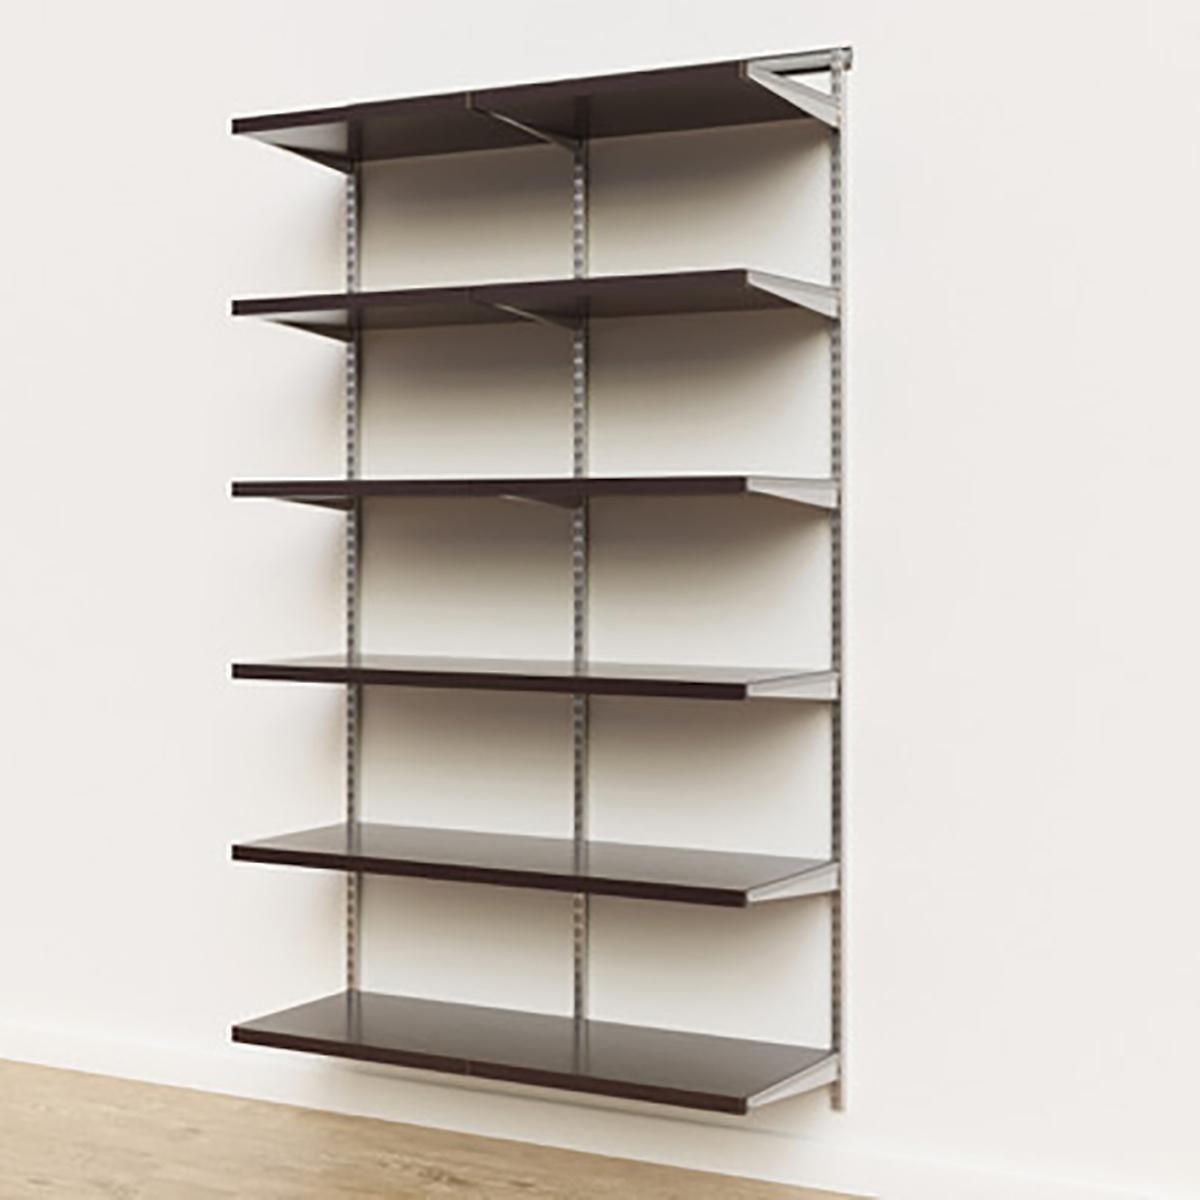 Elfa Décor 4' Platinum & Walnut Basic Shelving Units for Anywhere